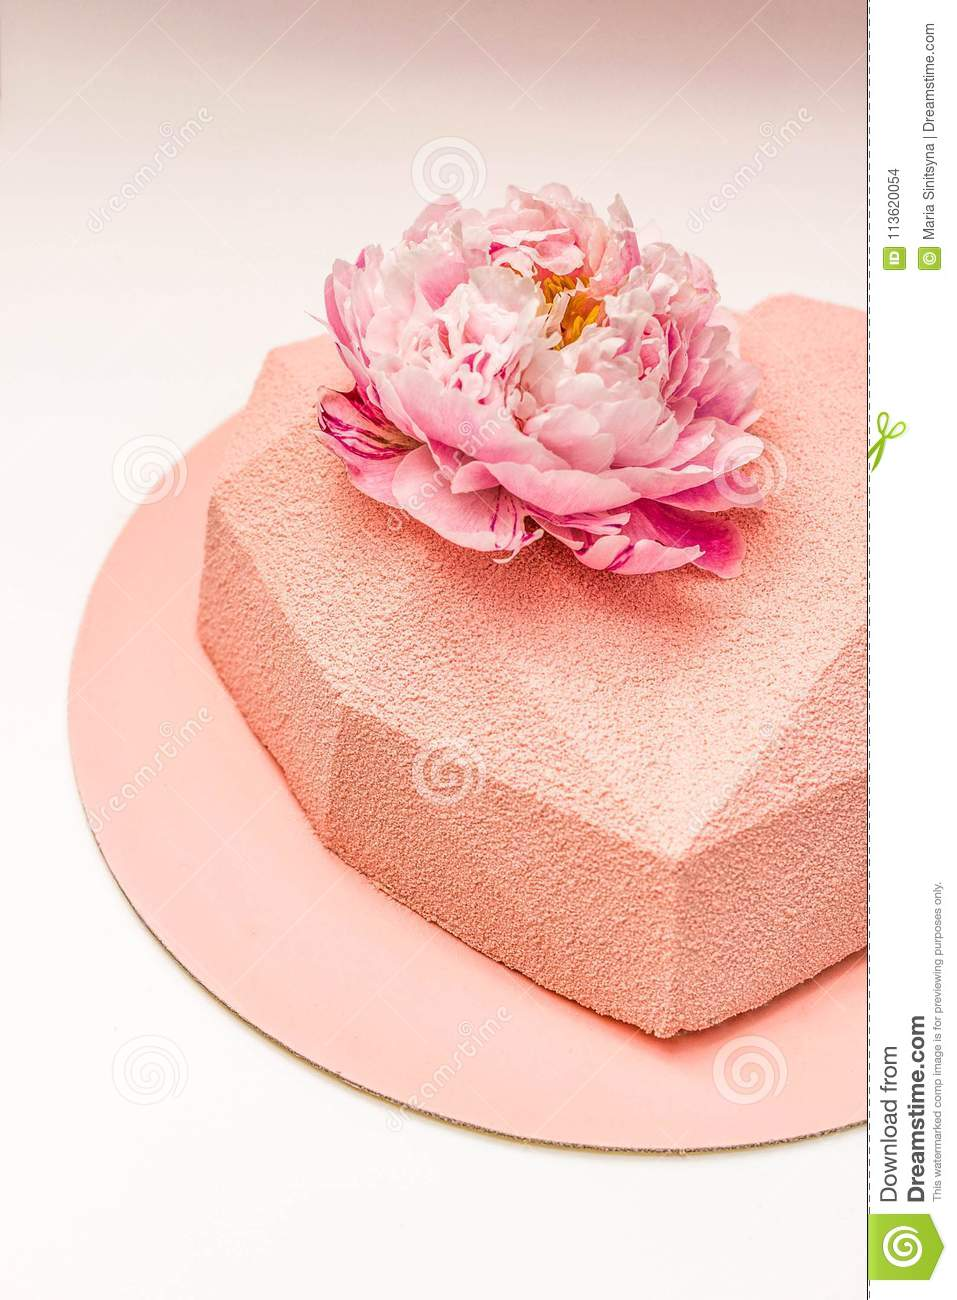 Heart shaped cake decorated with peony flower stock photo image of download heart shaped cake decorated with peony flower stock photo image of berries foodphoto izmirmasajfo